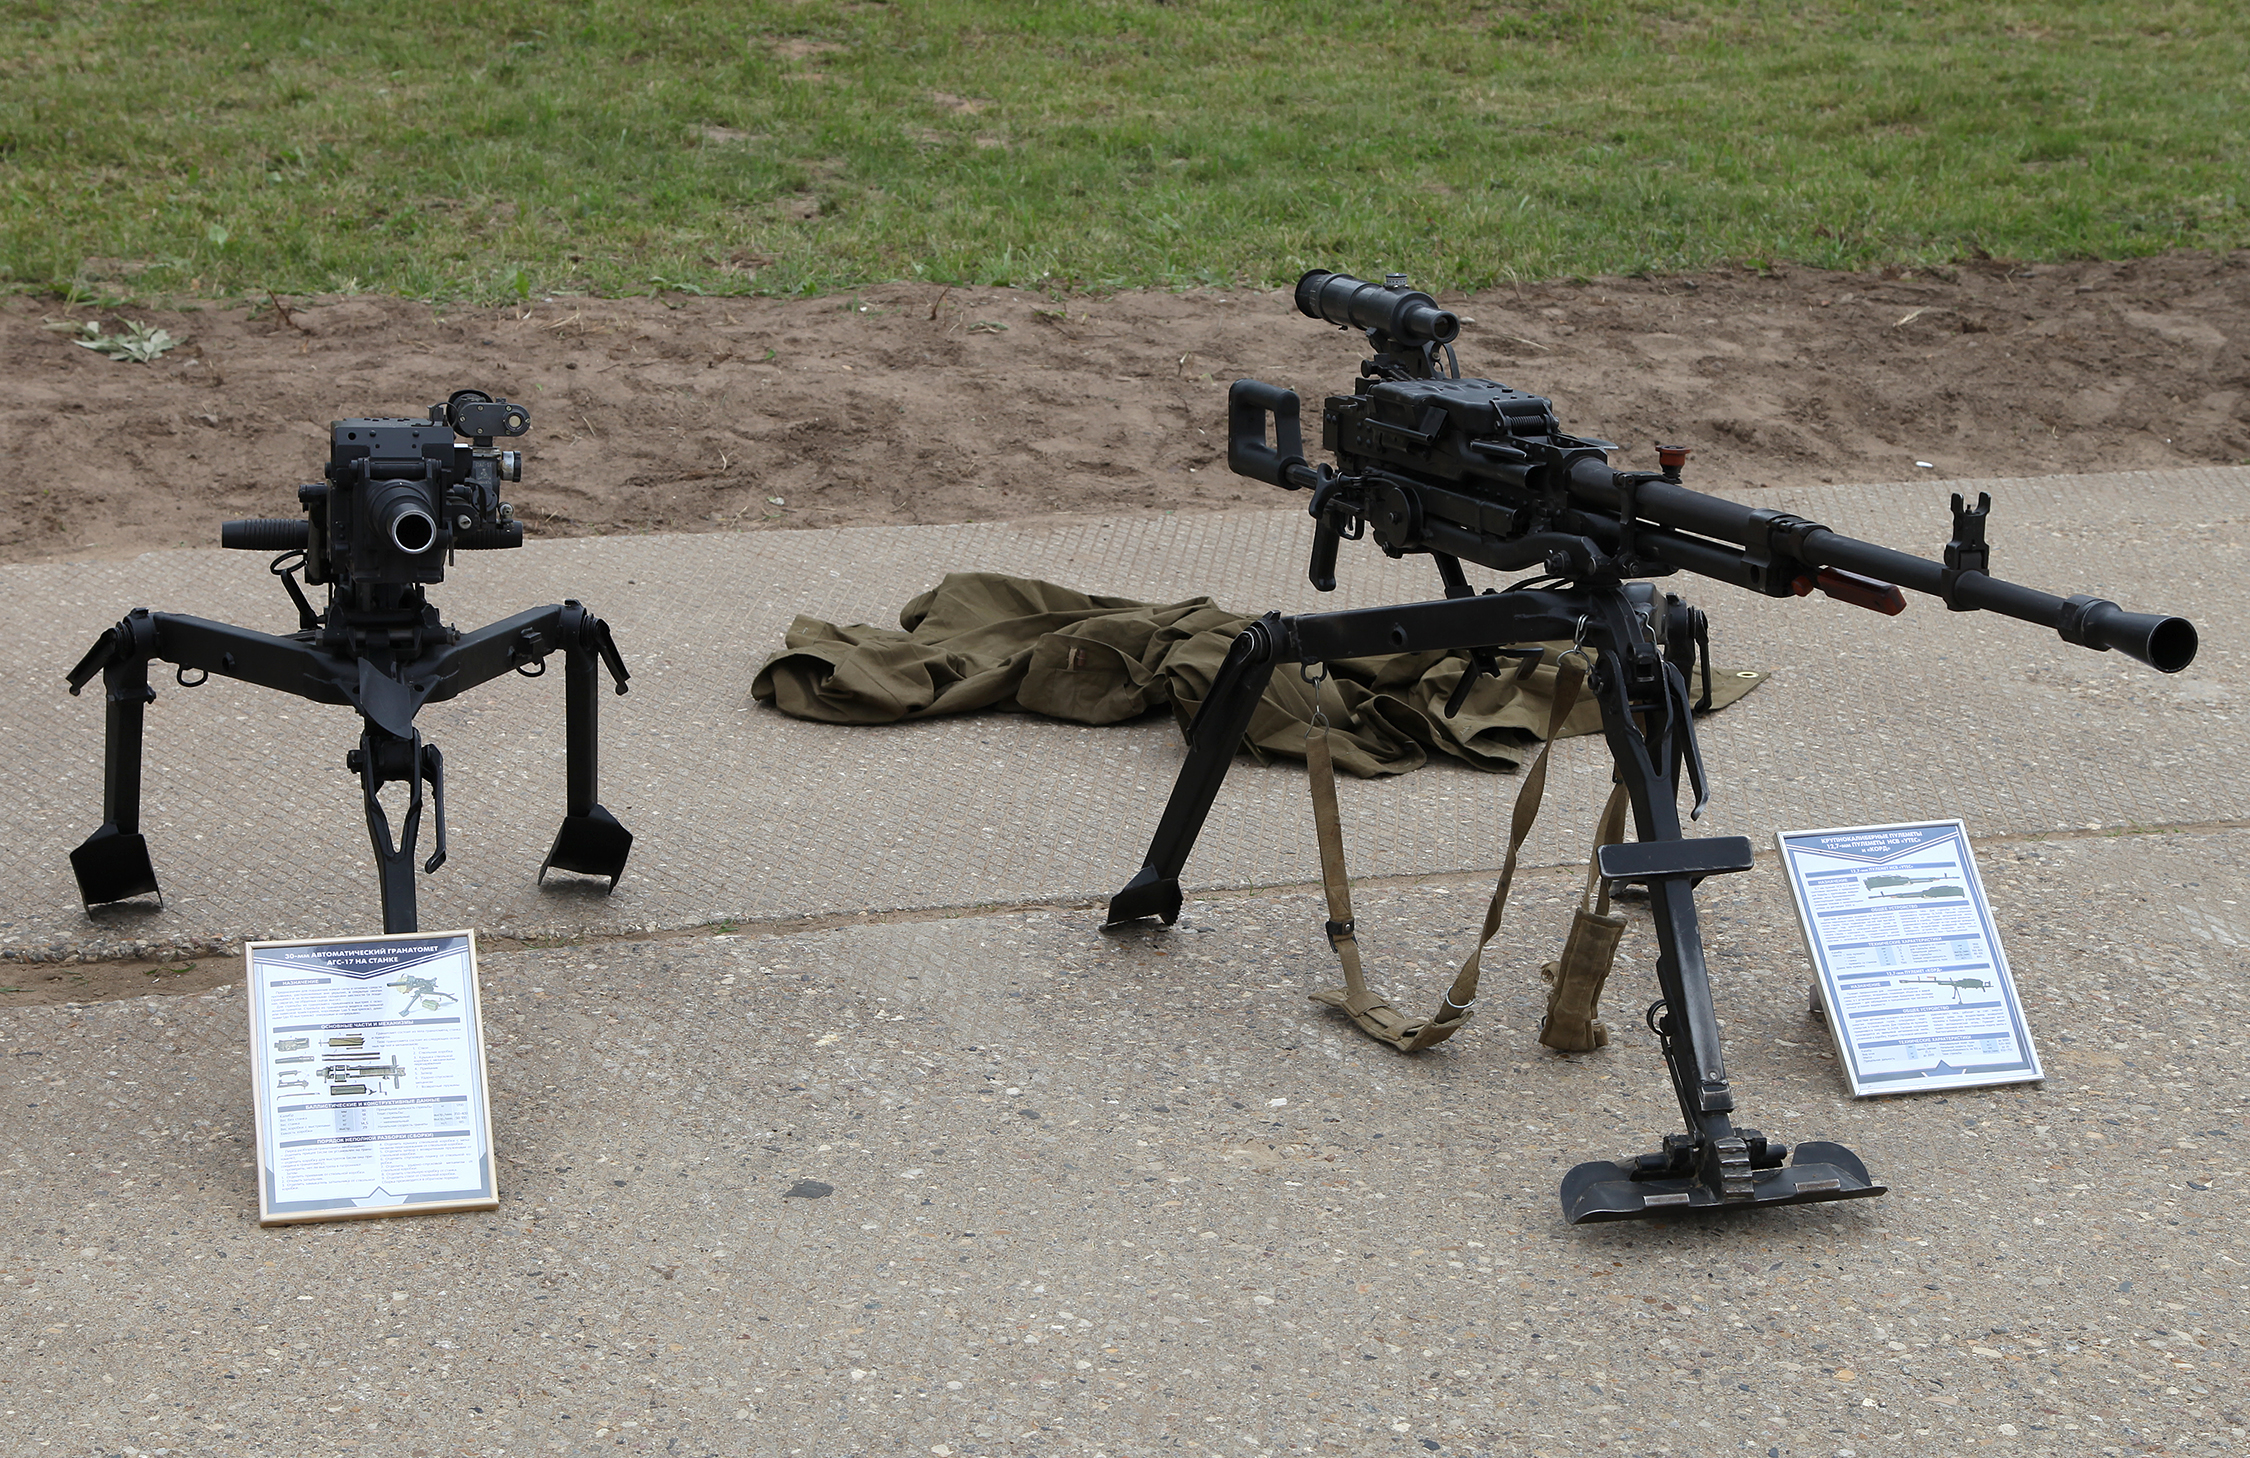 AGS-17: technical specifications. Grenade Launcher AGS-17 Flame 90